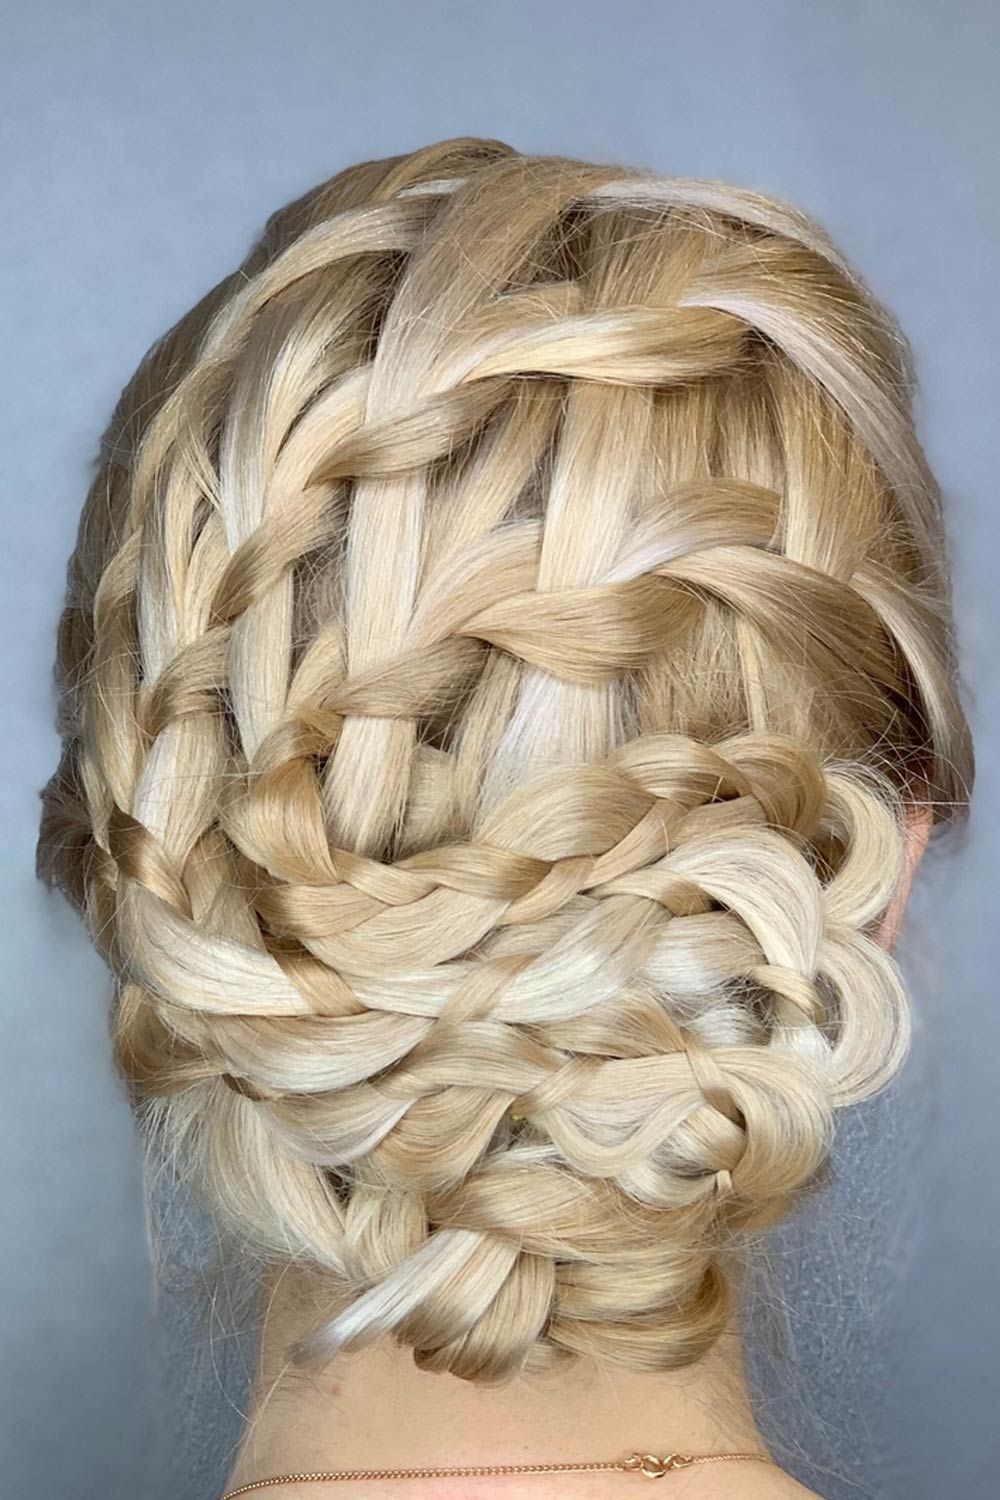 Updo Hairstyle With Ladder Braids